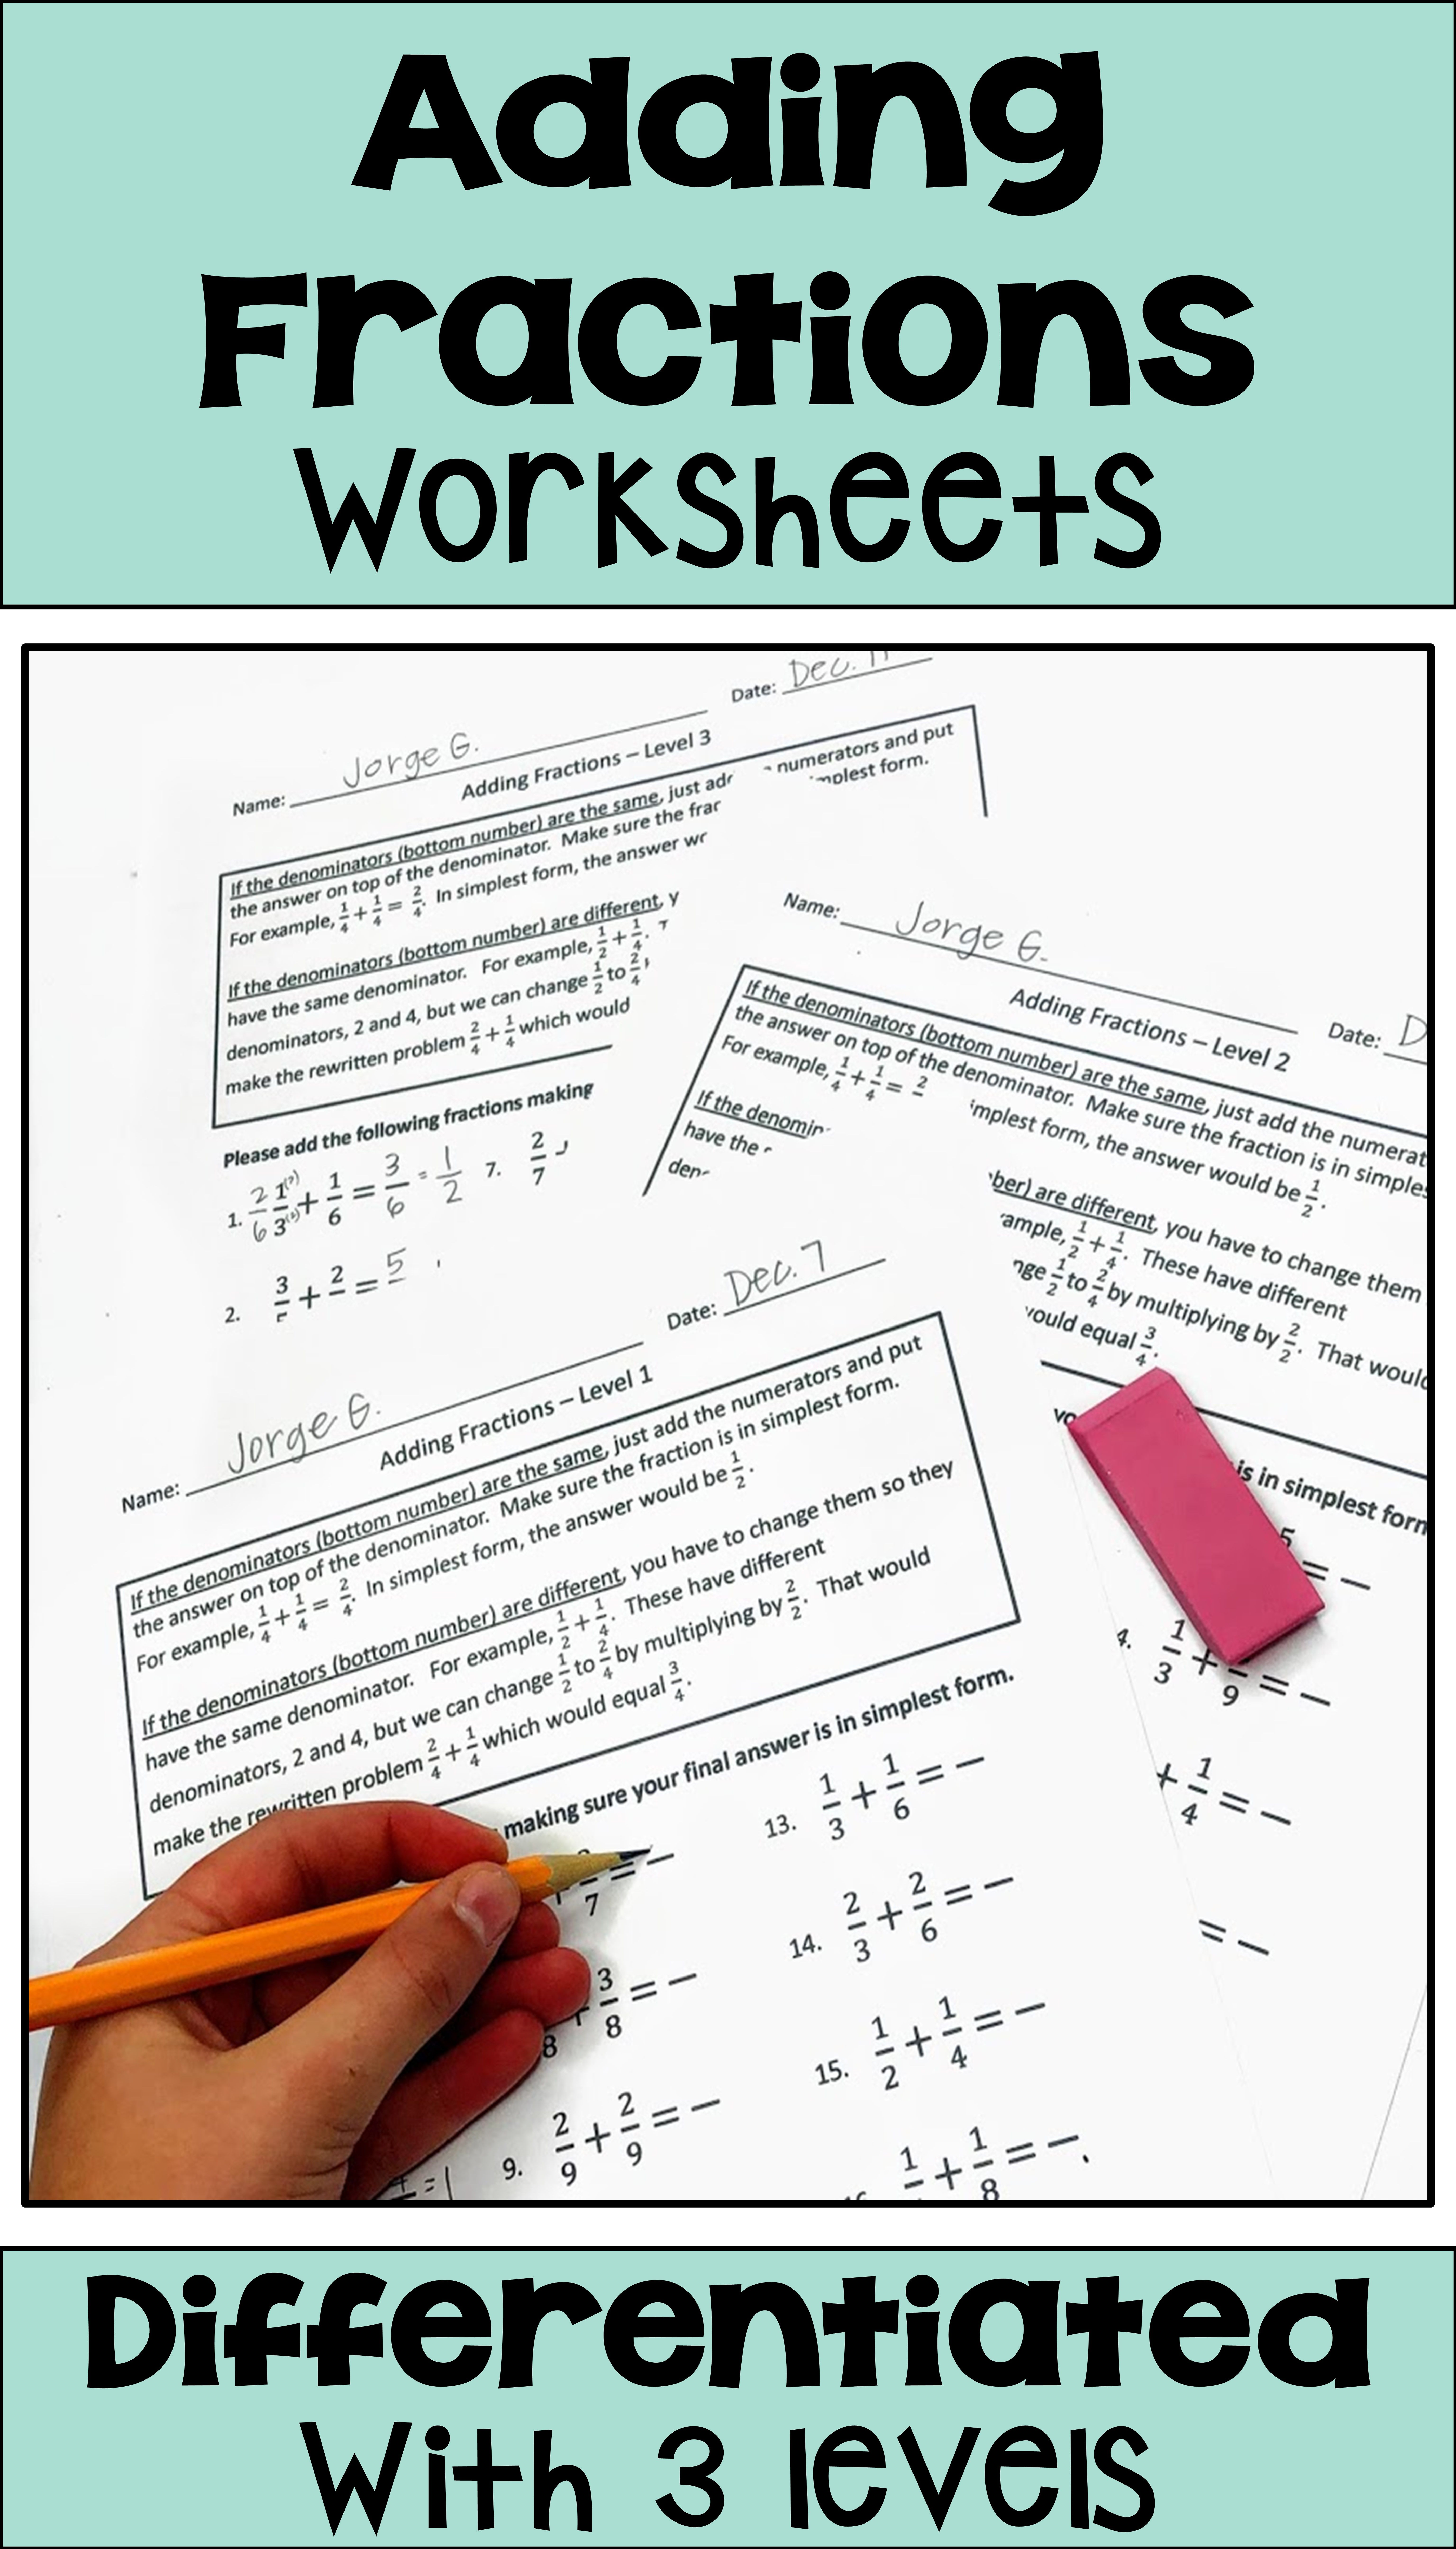 These 3 Worksheets On Adding Fractions Are Differentiated